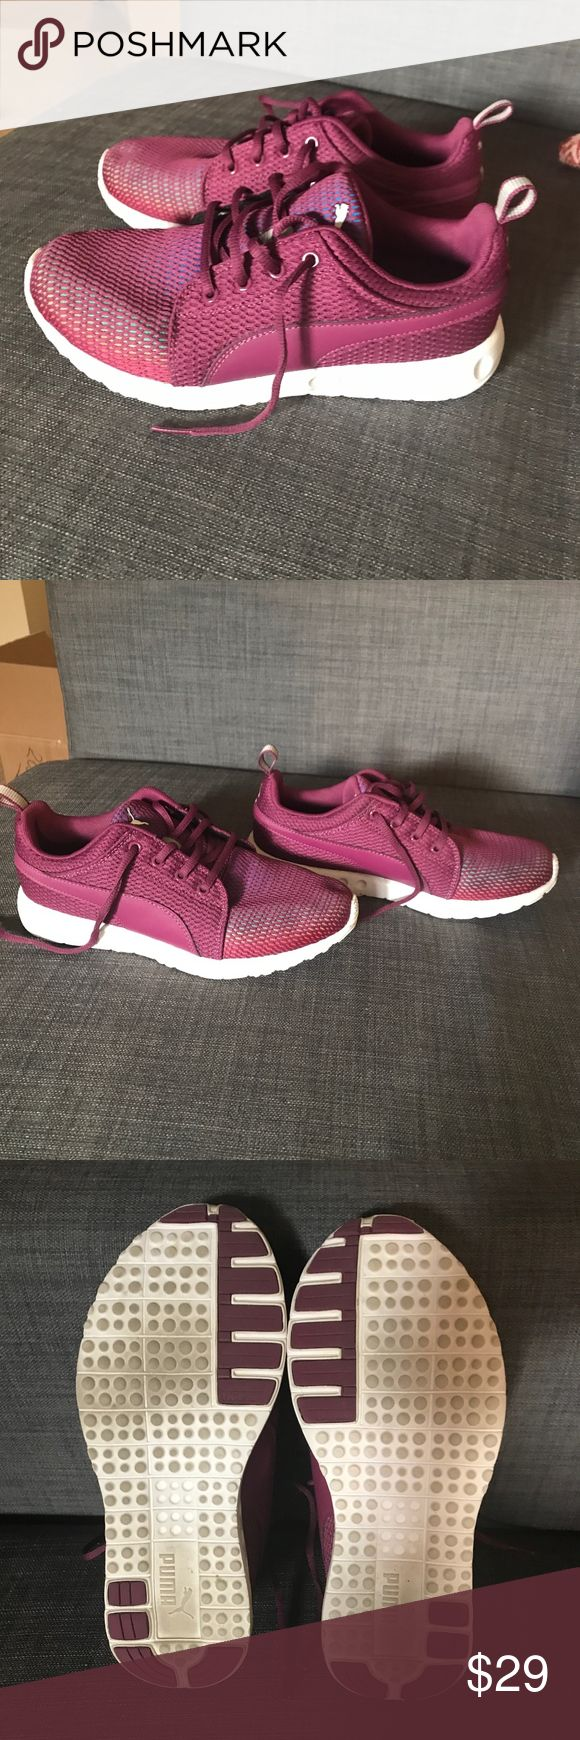 Purple Puma Cross Training Running Shoes Size 8 New Women's Puma Running Shoes + Cross Trainers. Soft form comfort insert. Size 8 and fits true to size. Excellent Condition. Only worn a few times! Puma Shoes Athletic Shoes